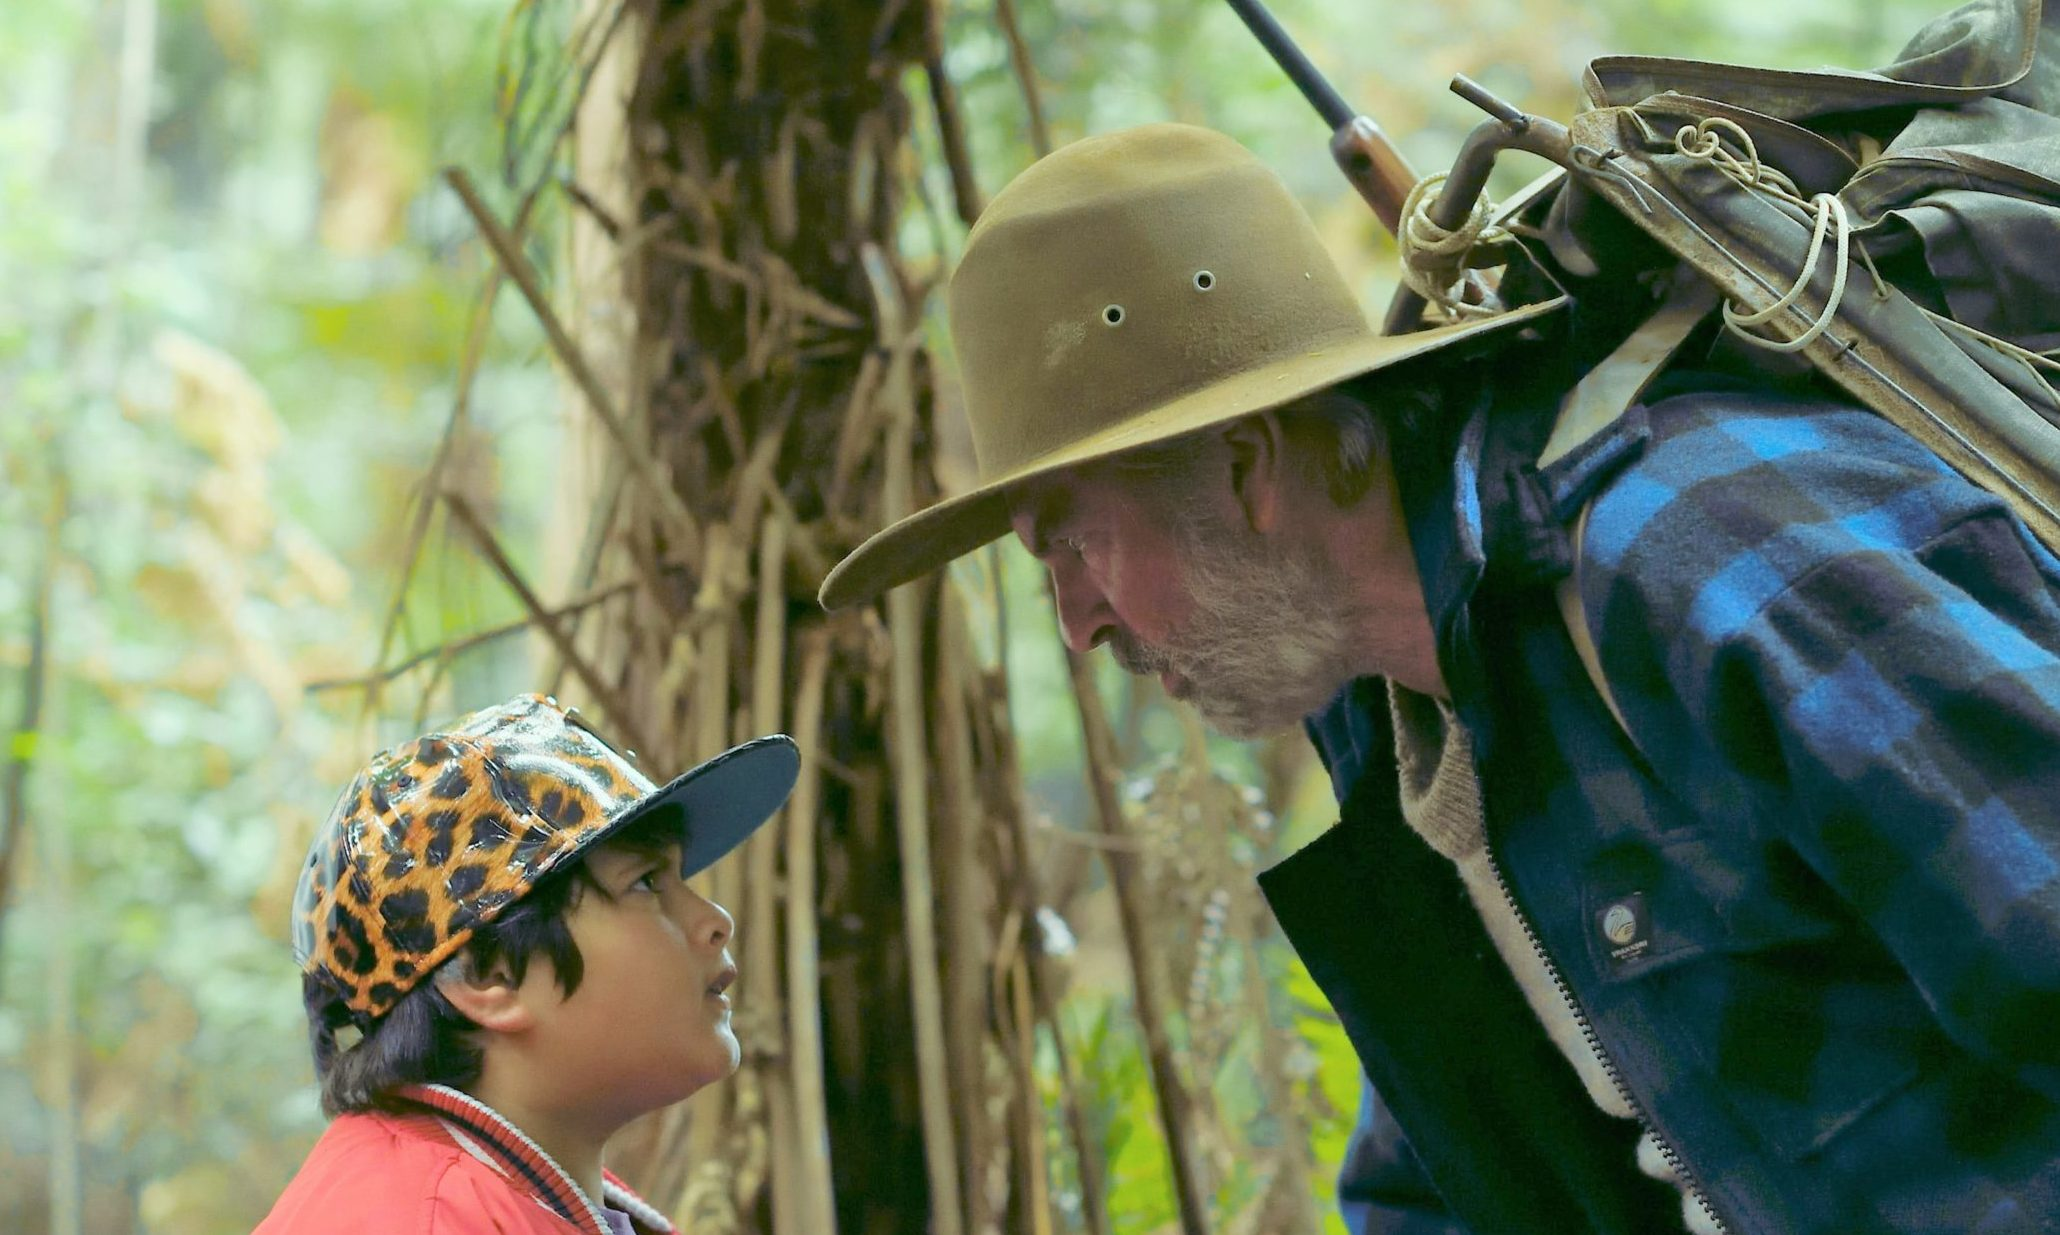 Julian Dennison as Ricky and Sam Neill as Hec in Hunt for the Wilderpeople.